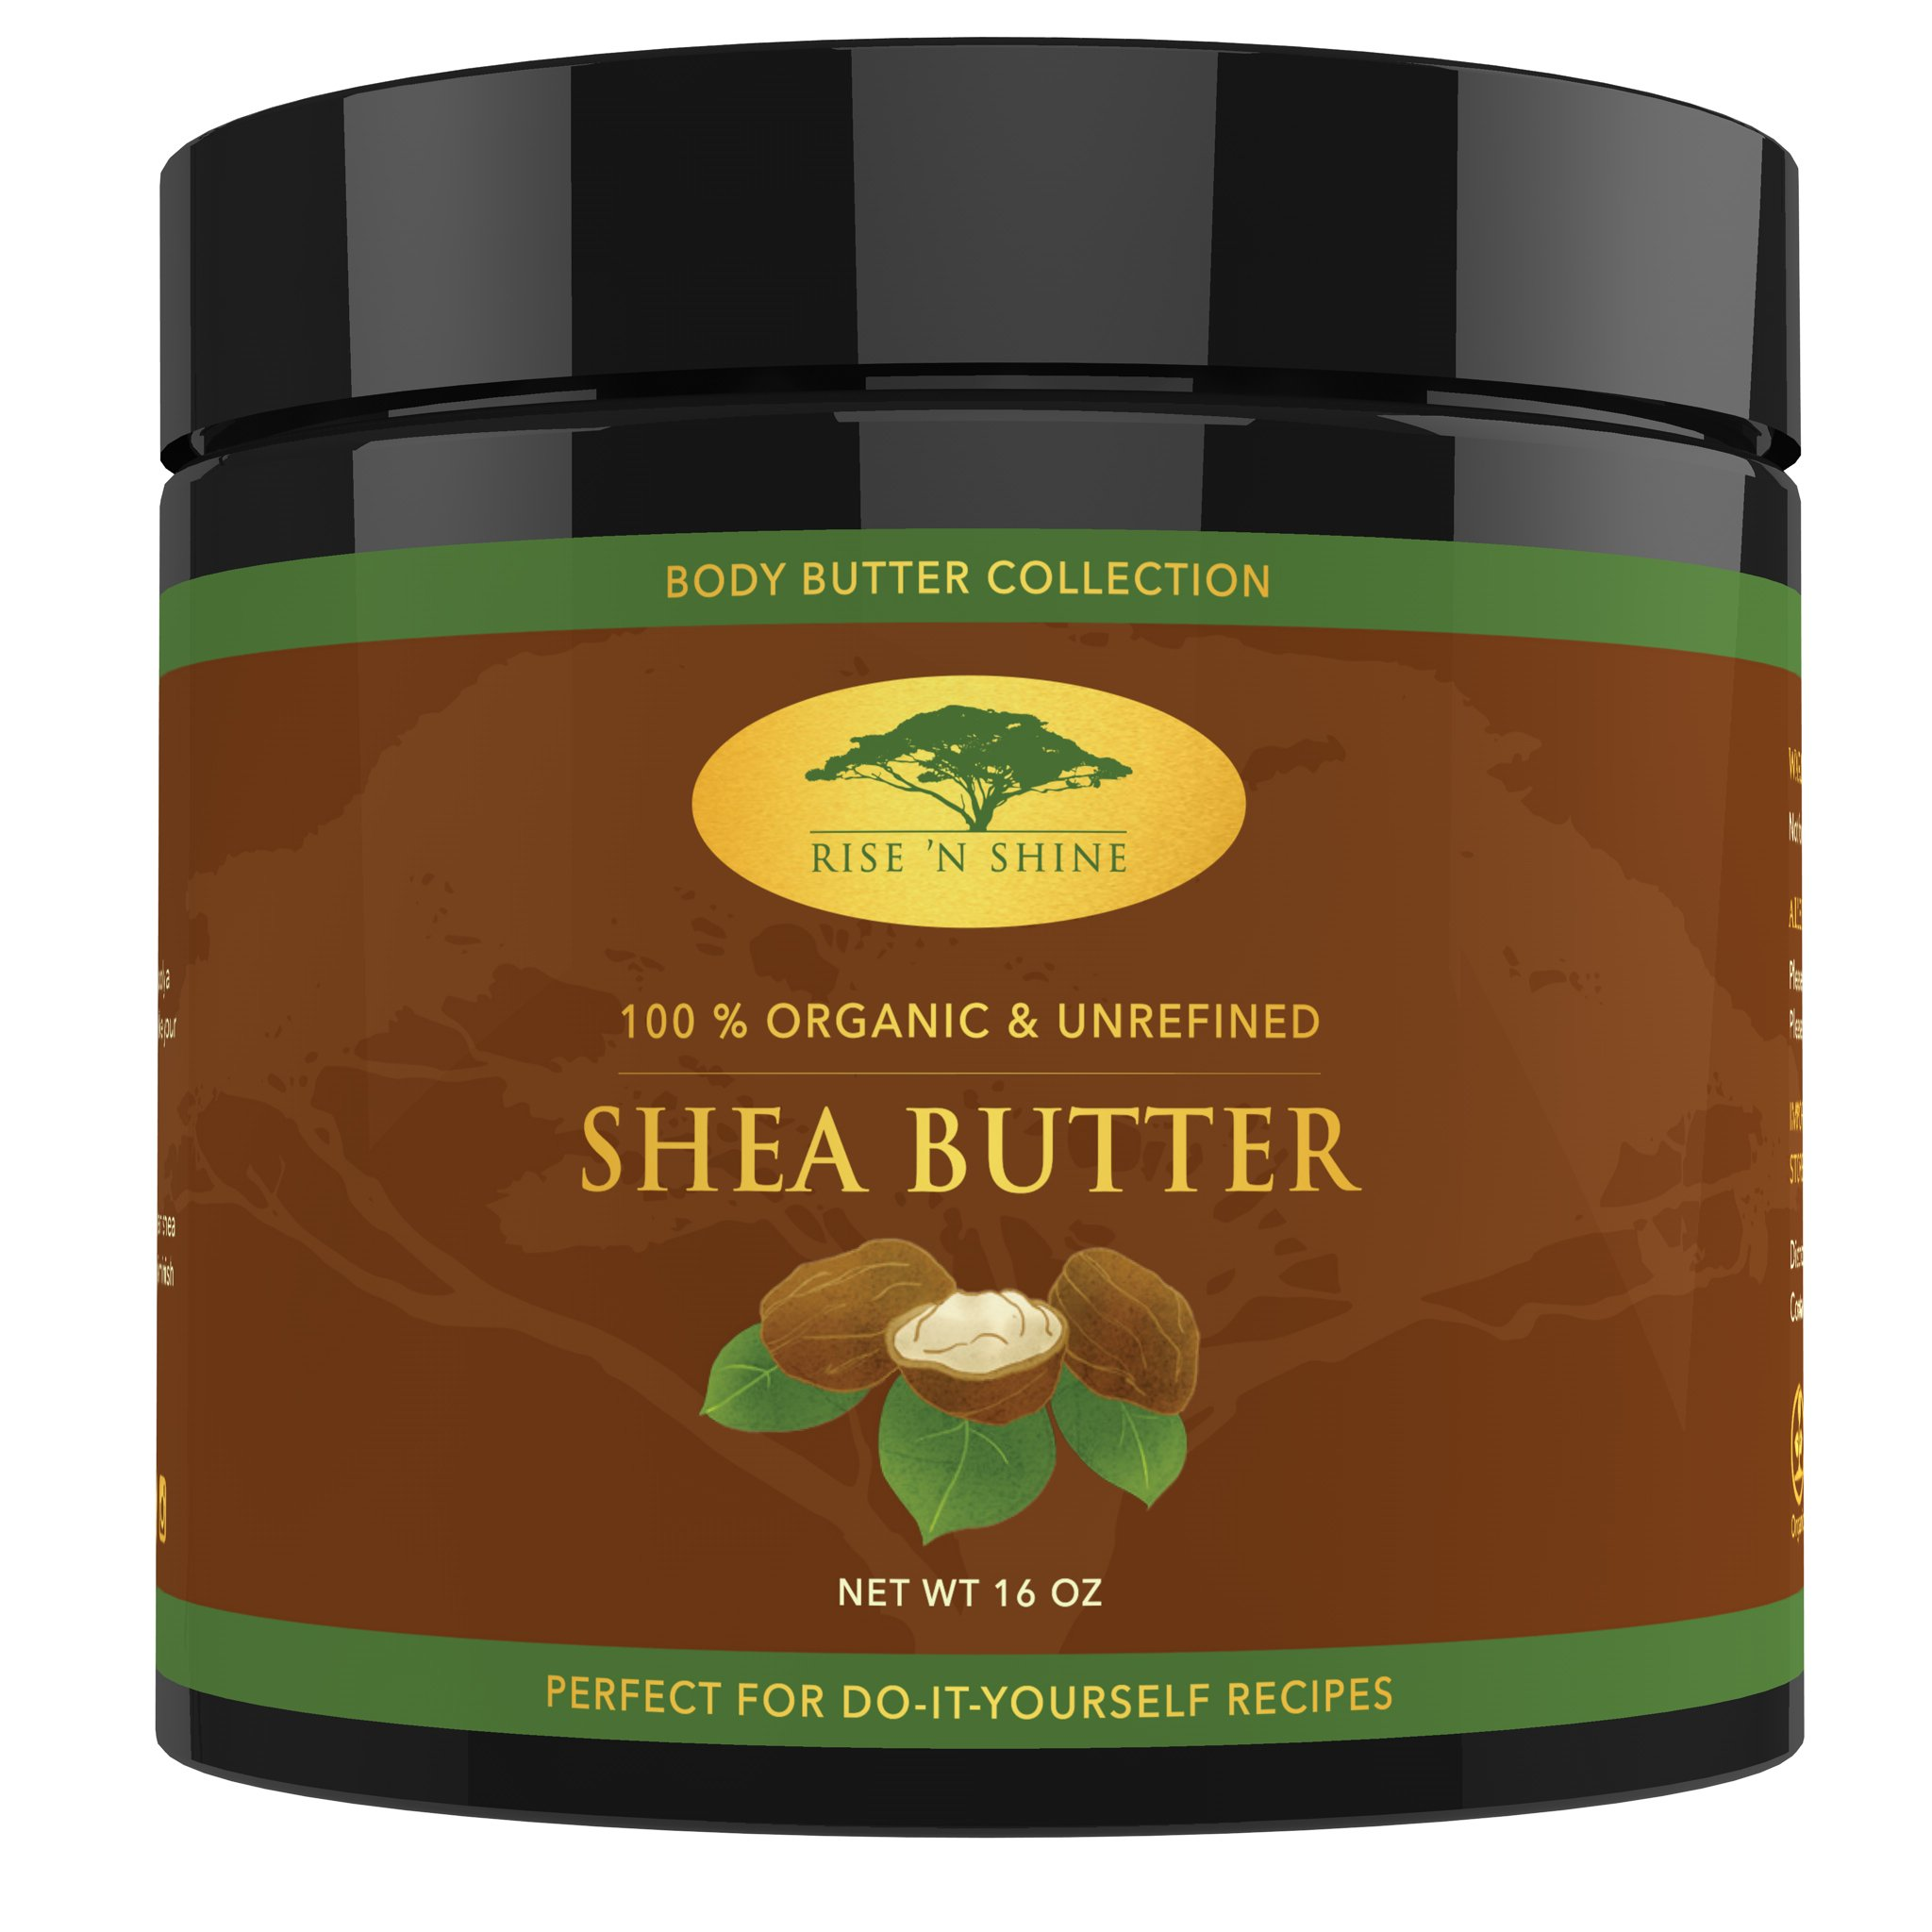 African Shea Butter Raw Organic Unrefined - Healing Body Butter for Face & Body - Deep Conditioner for Dry Skin, Hair Care, Stretch Marks, Eczema/Psoriasis Treatment, Lip and Beard Balm, Soap (16 oz) by Rise 'N Shine Online